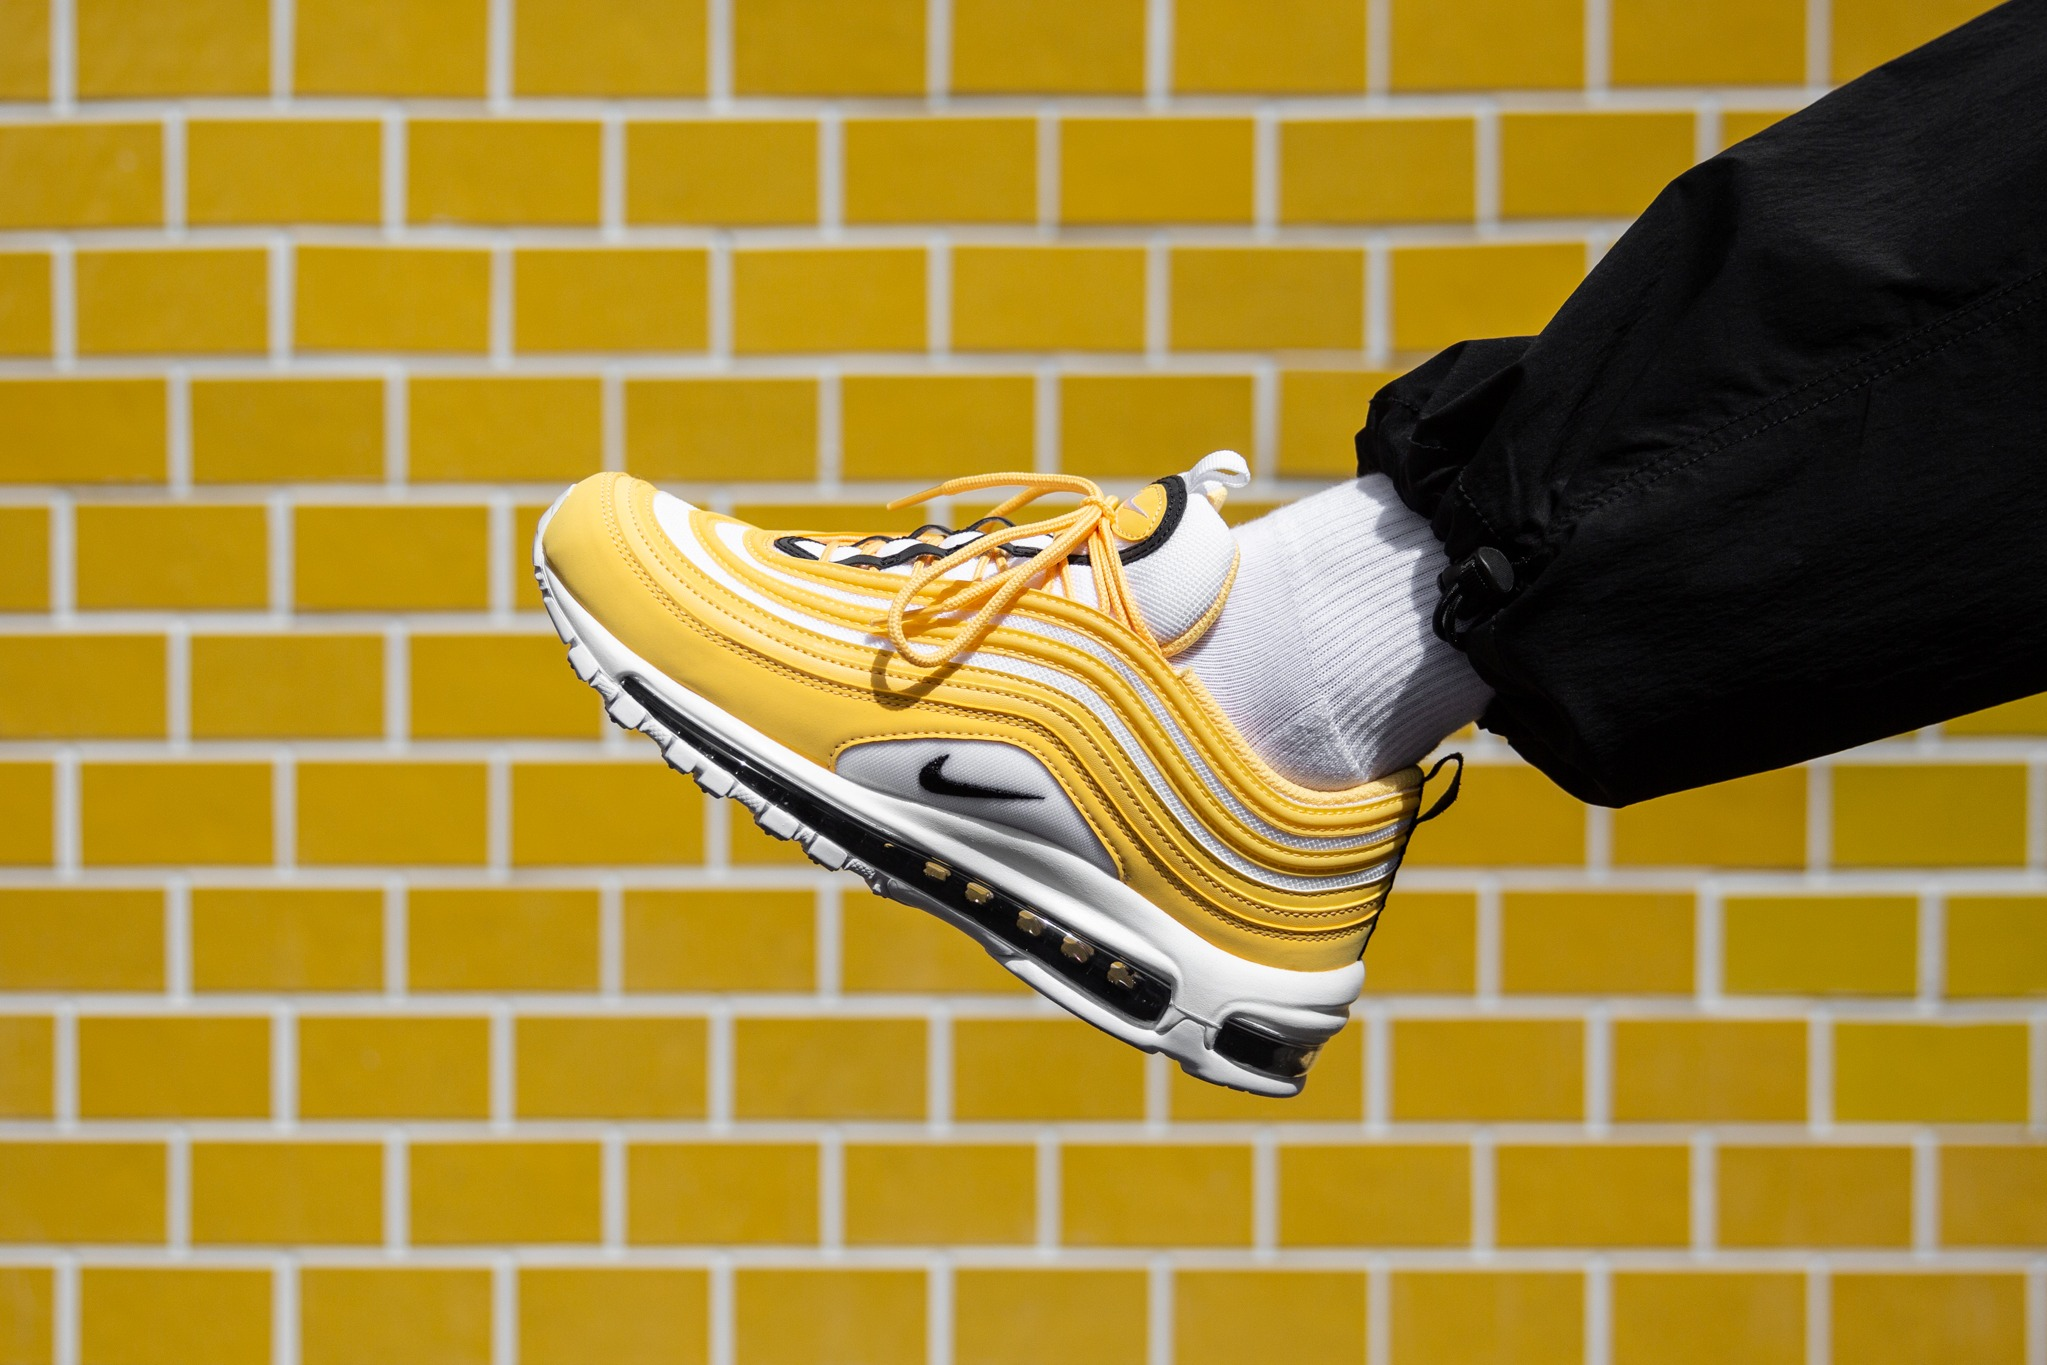 0960b28993 Nike is brining sunshine to its latest Air Max 97 release, which is  radiating waves topaz gold on the upper. The yellow tone is set against  white with black ...